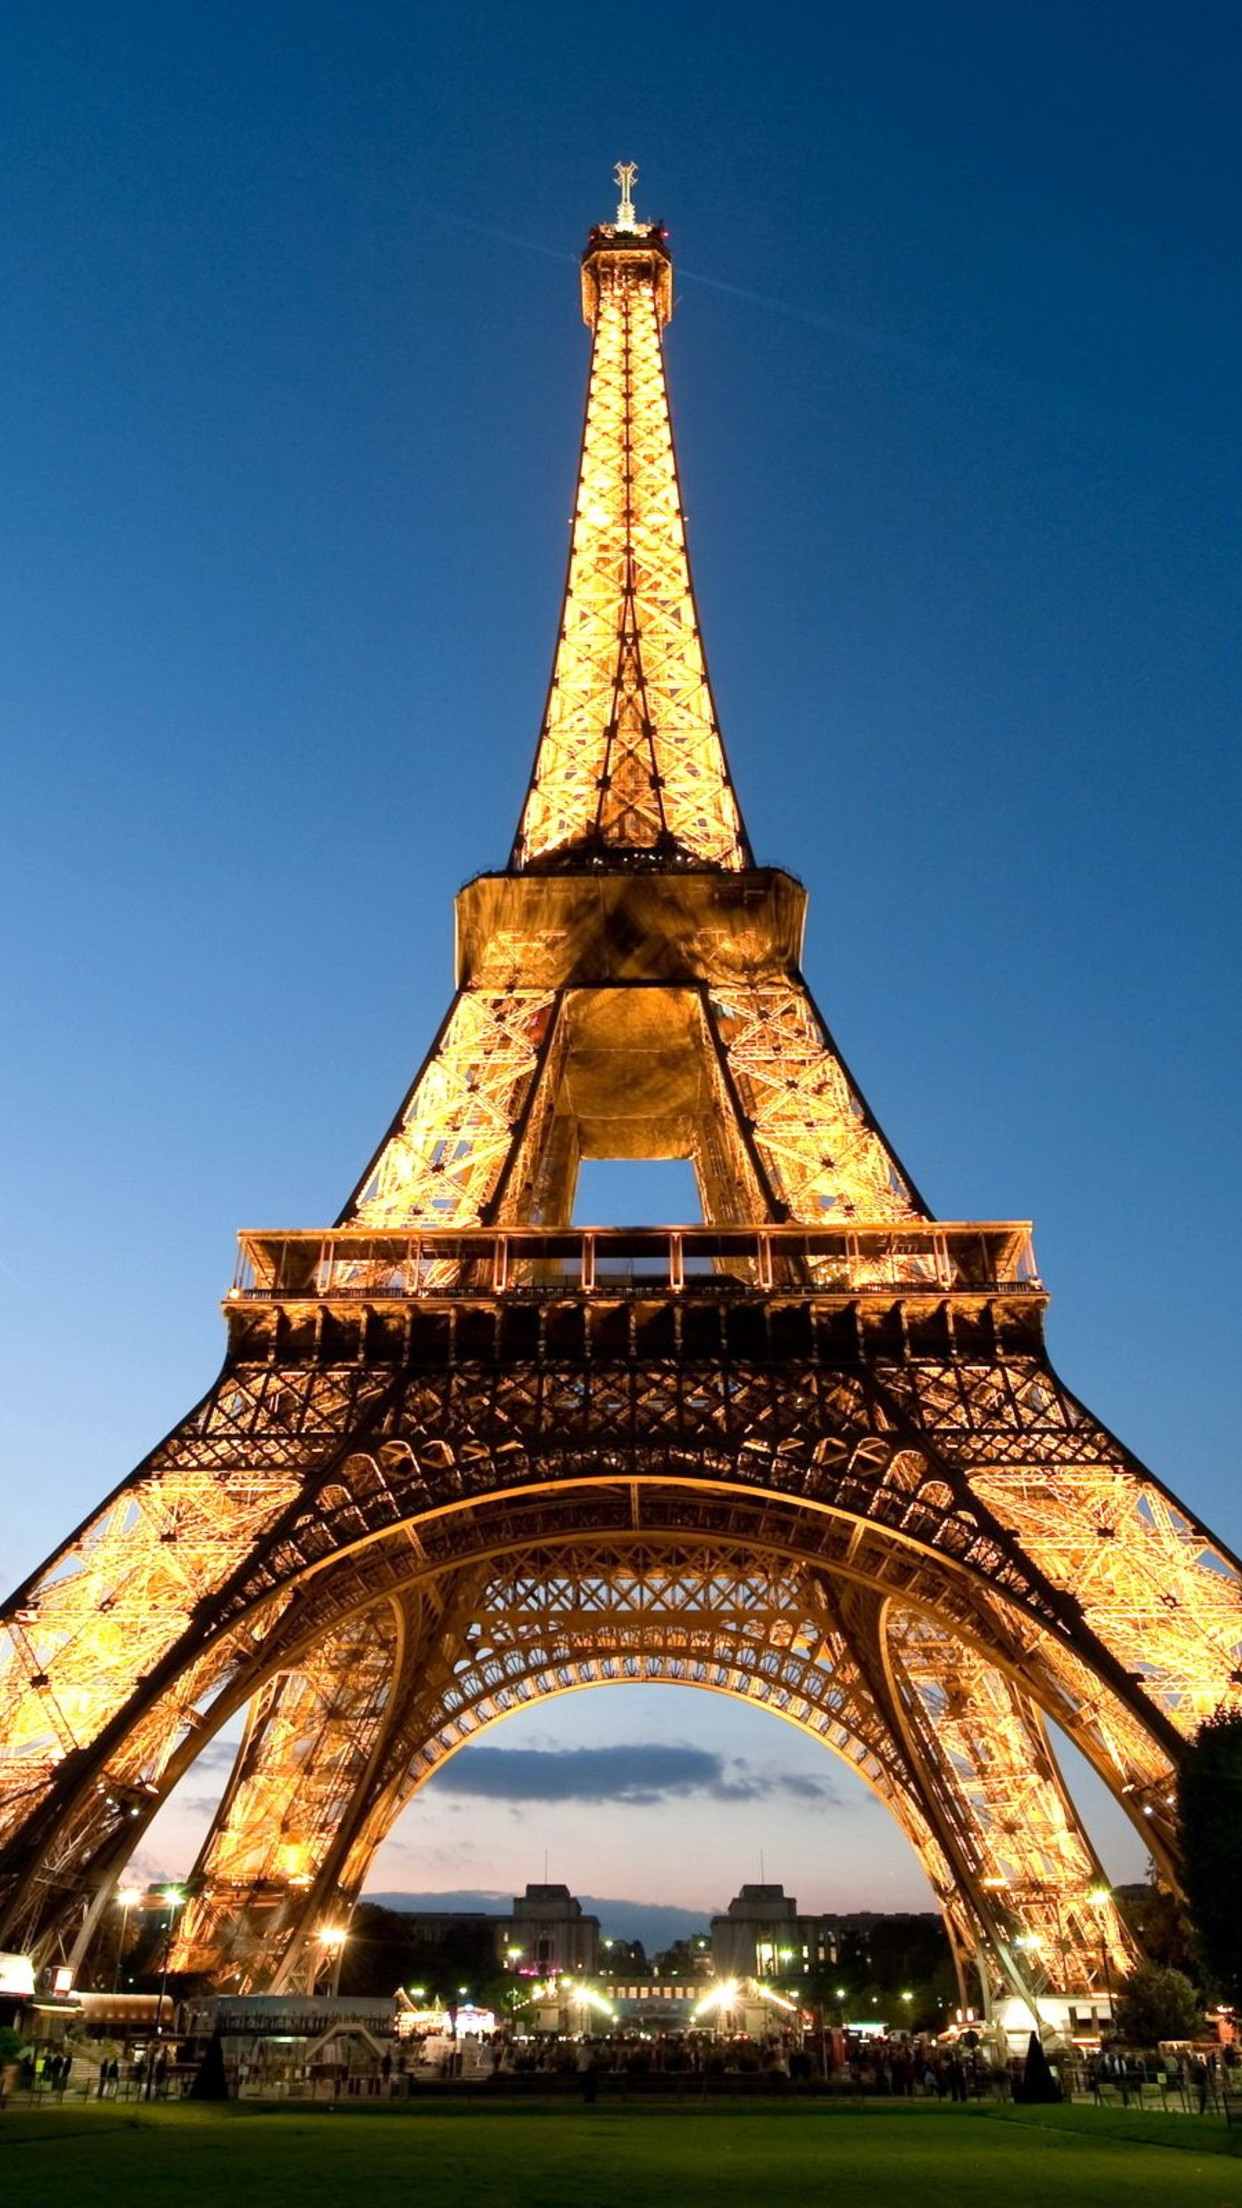 Eiffel Tower Full Of Lights Symbol Of Paris 3wallpapers Iphone